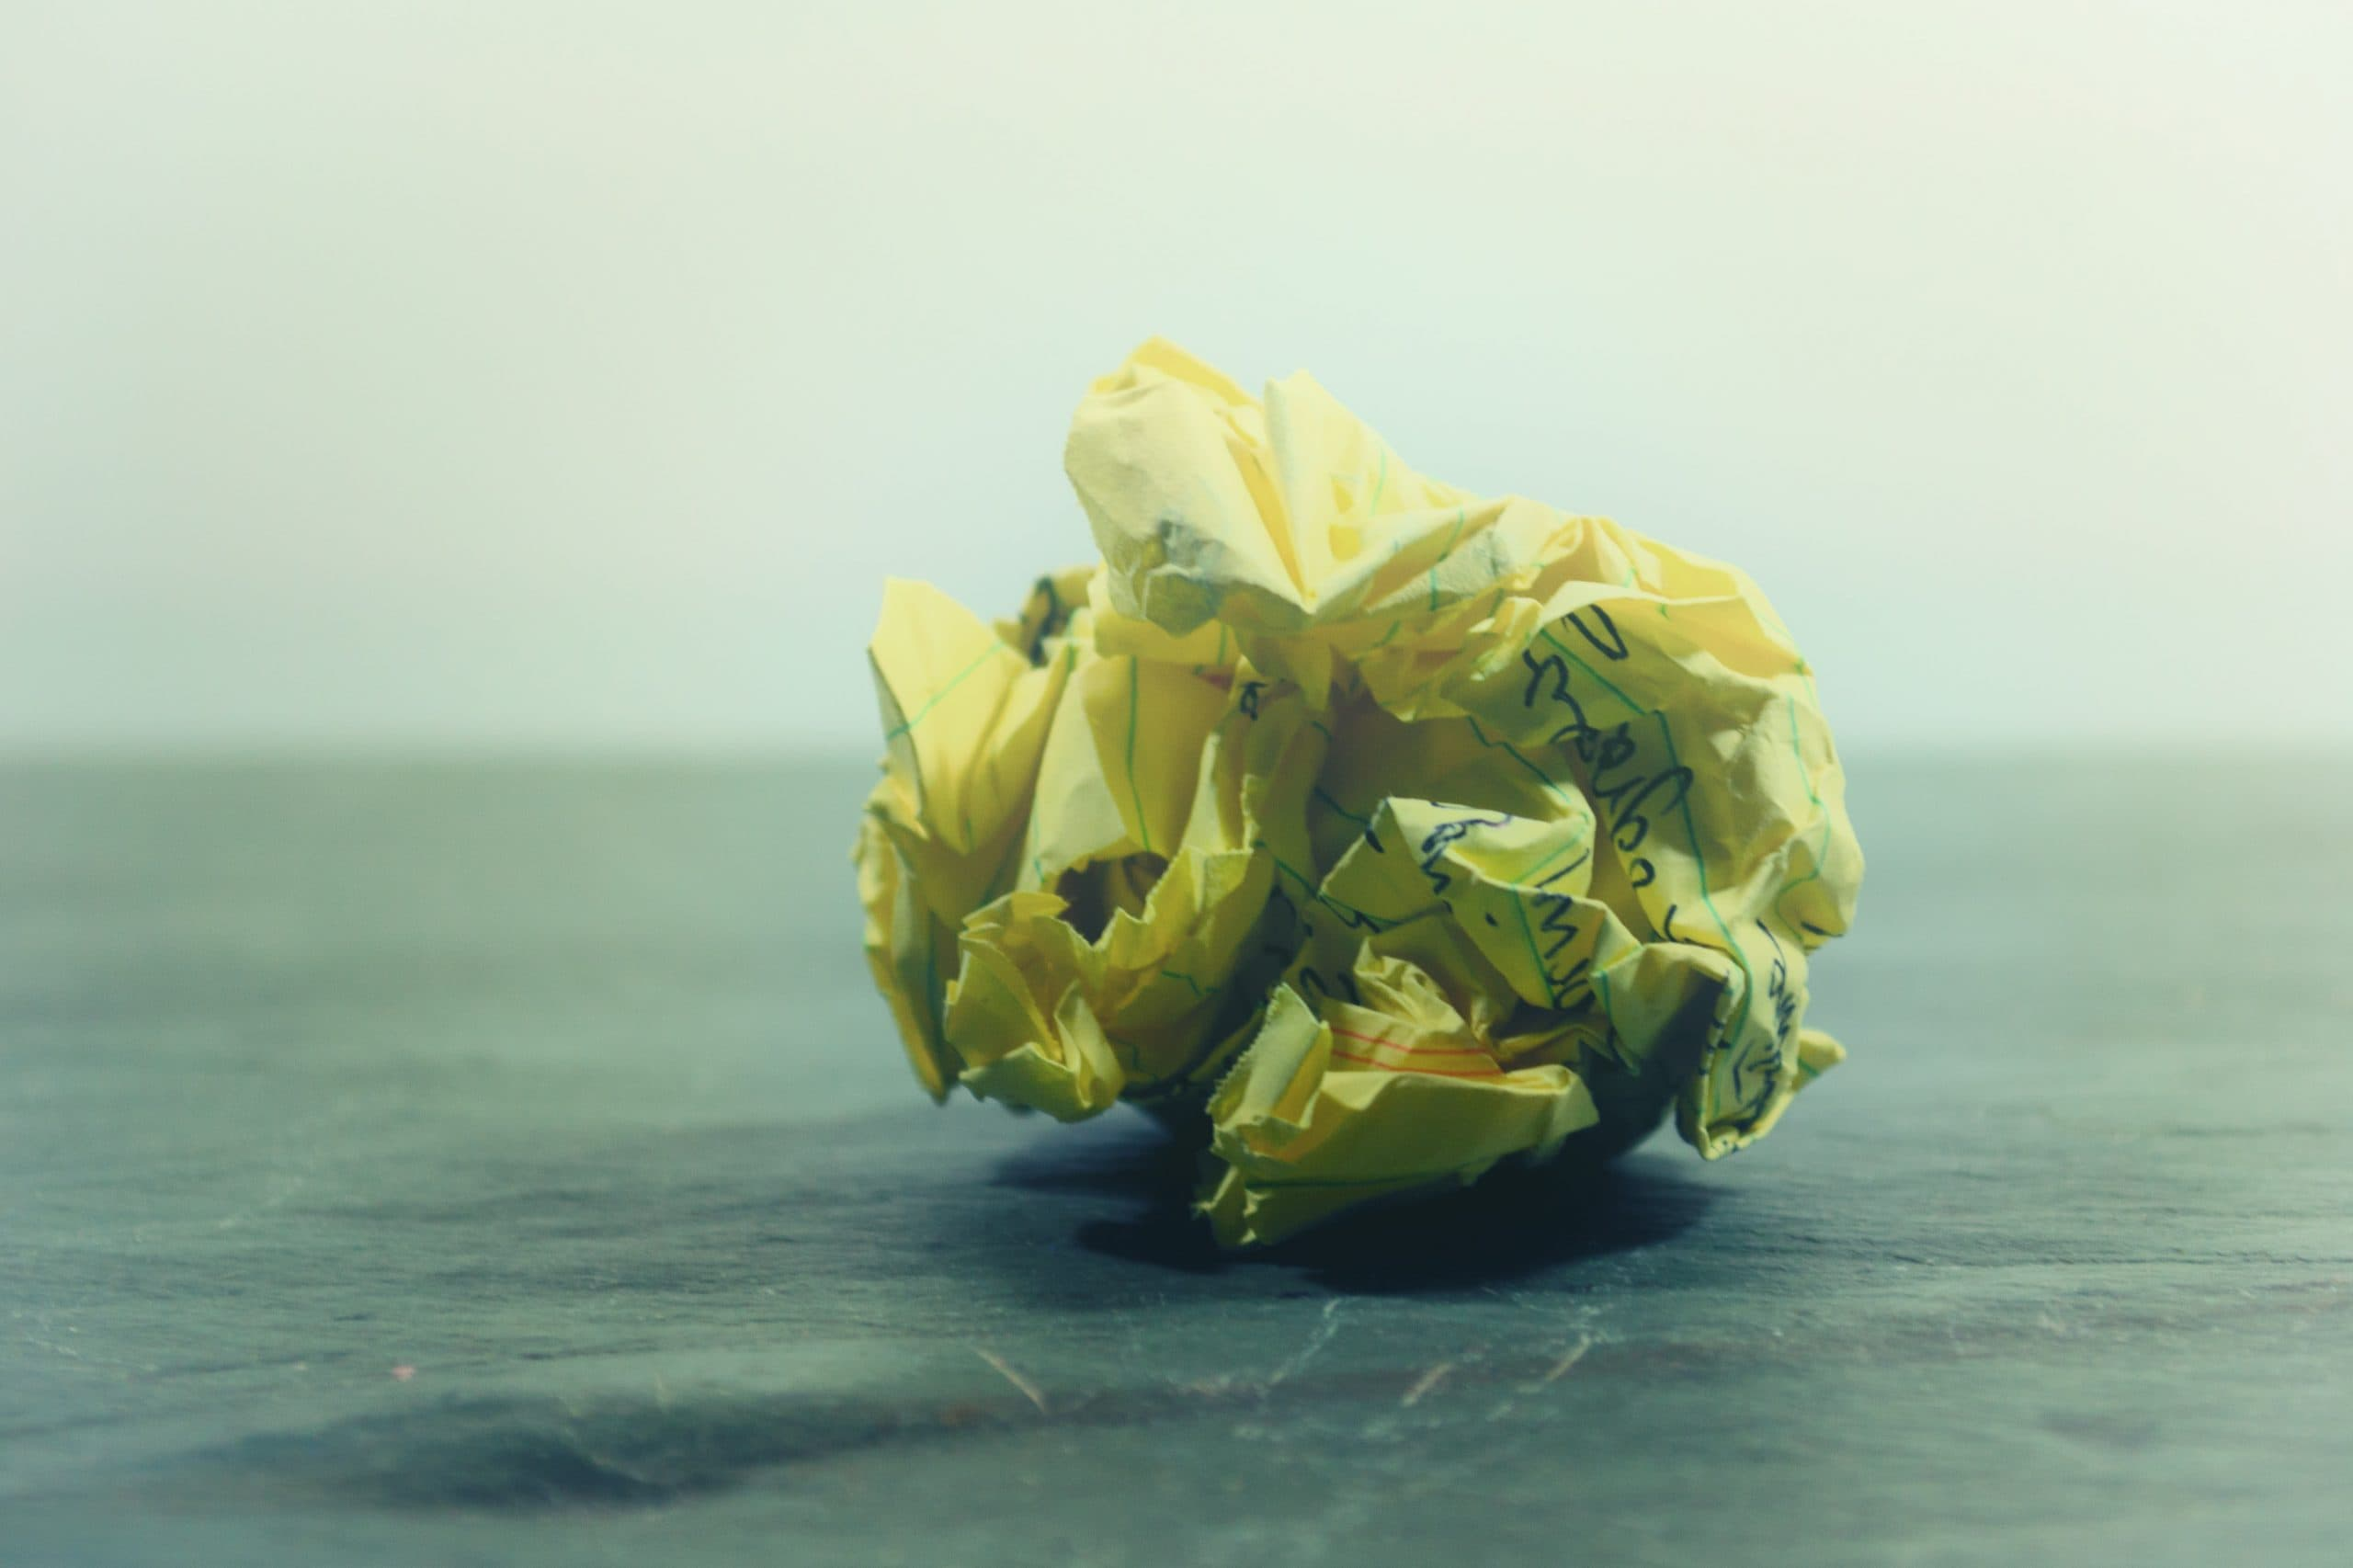 A piece of scrunched up yellow paper